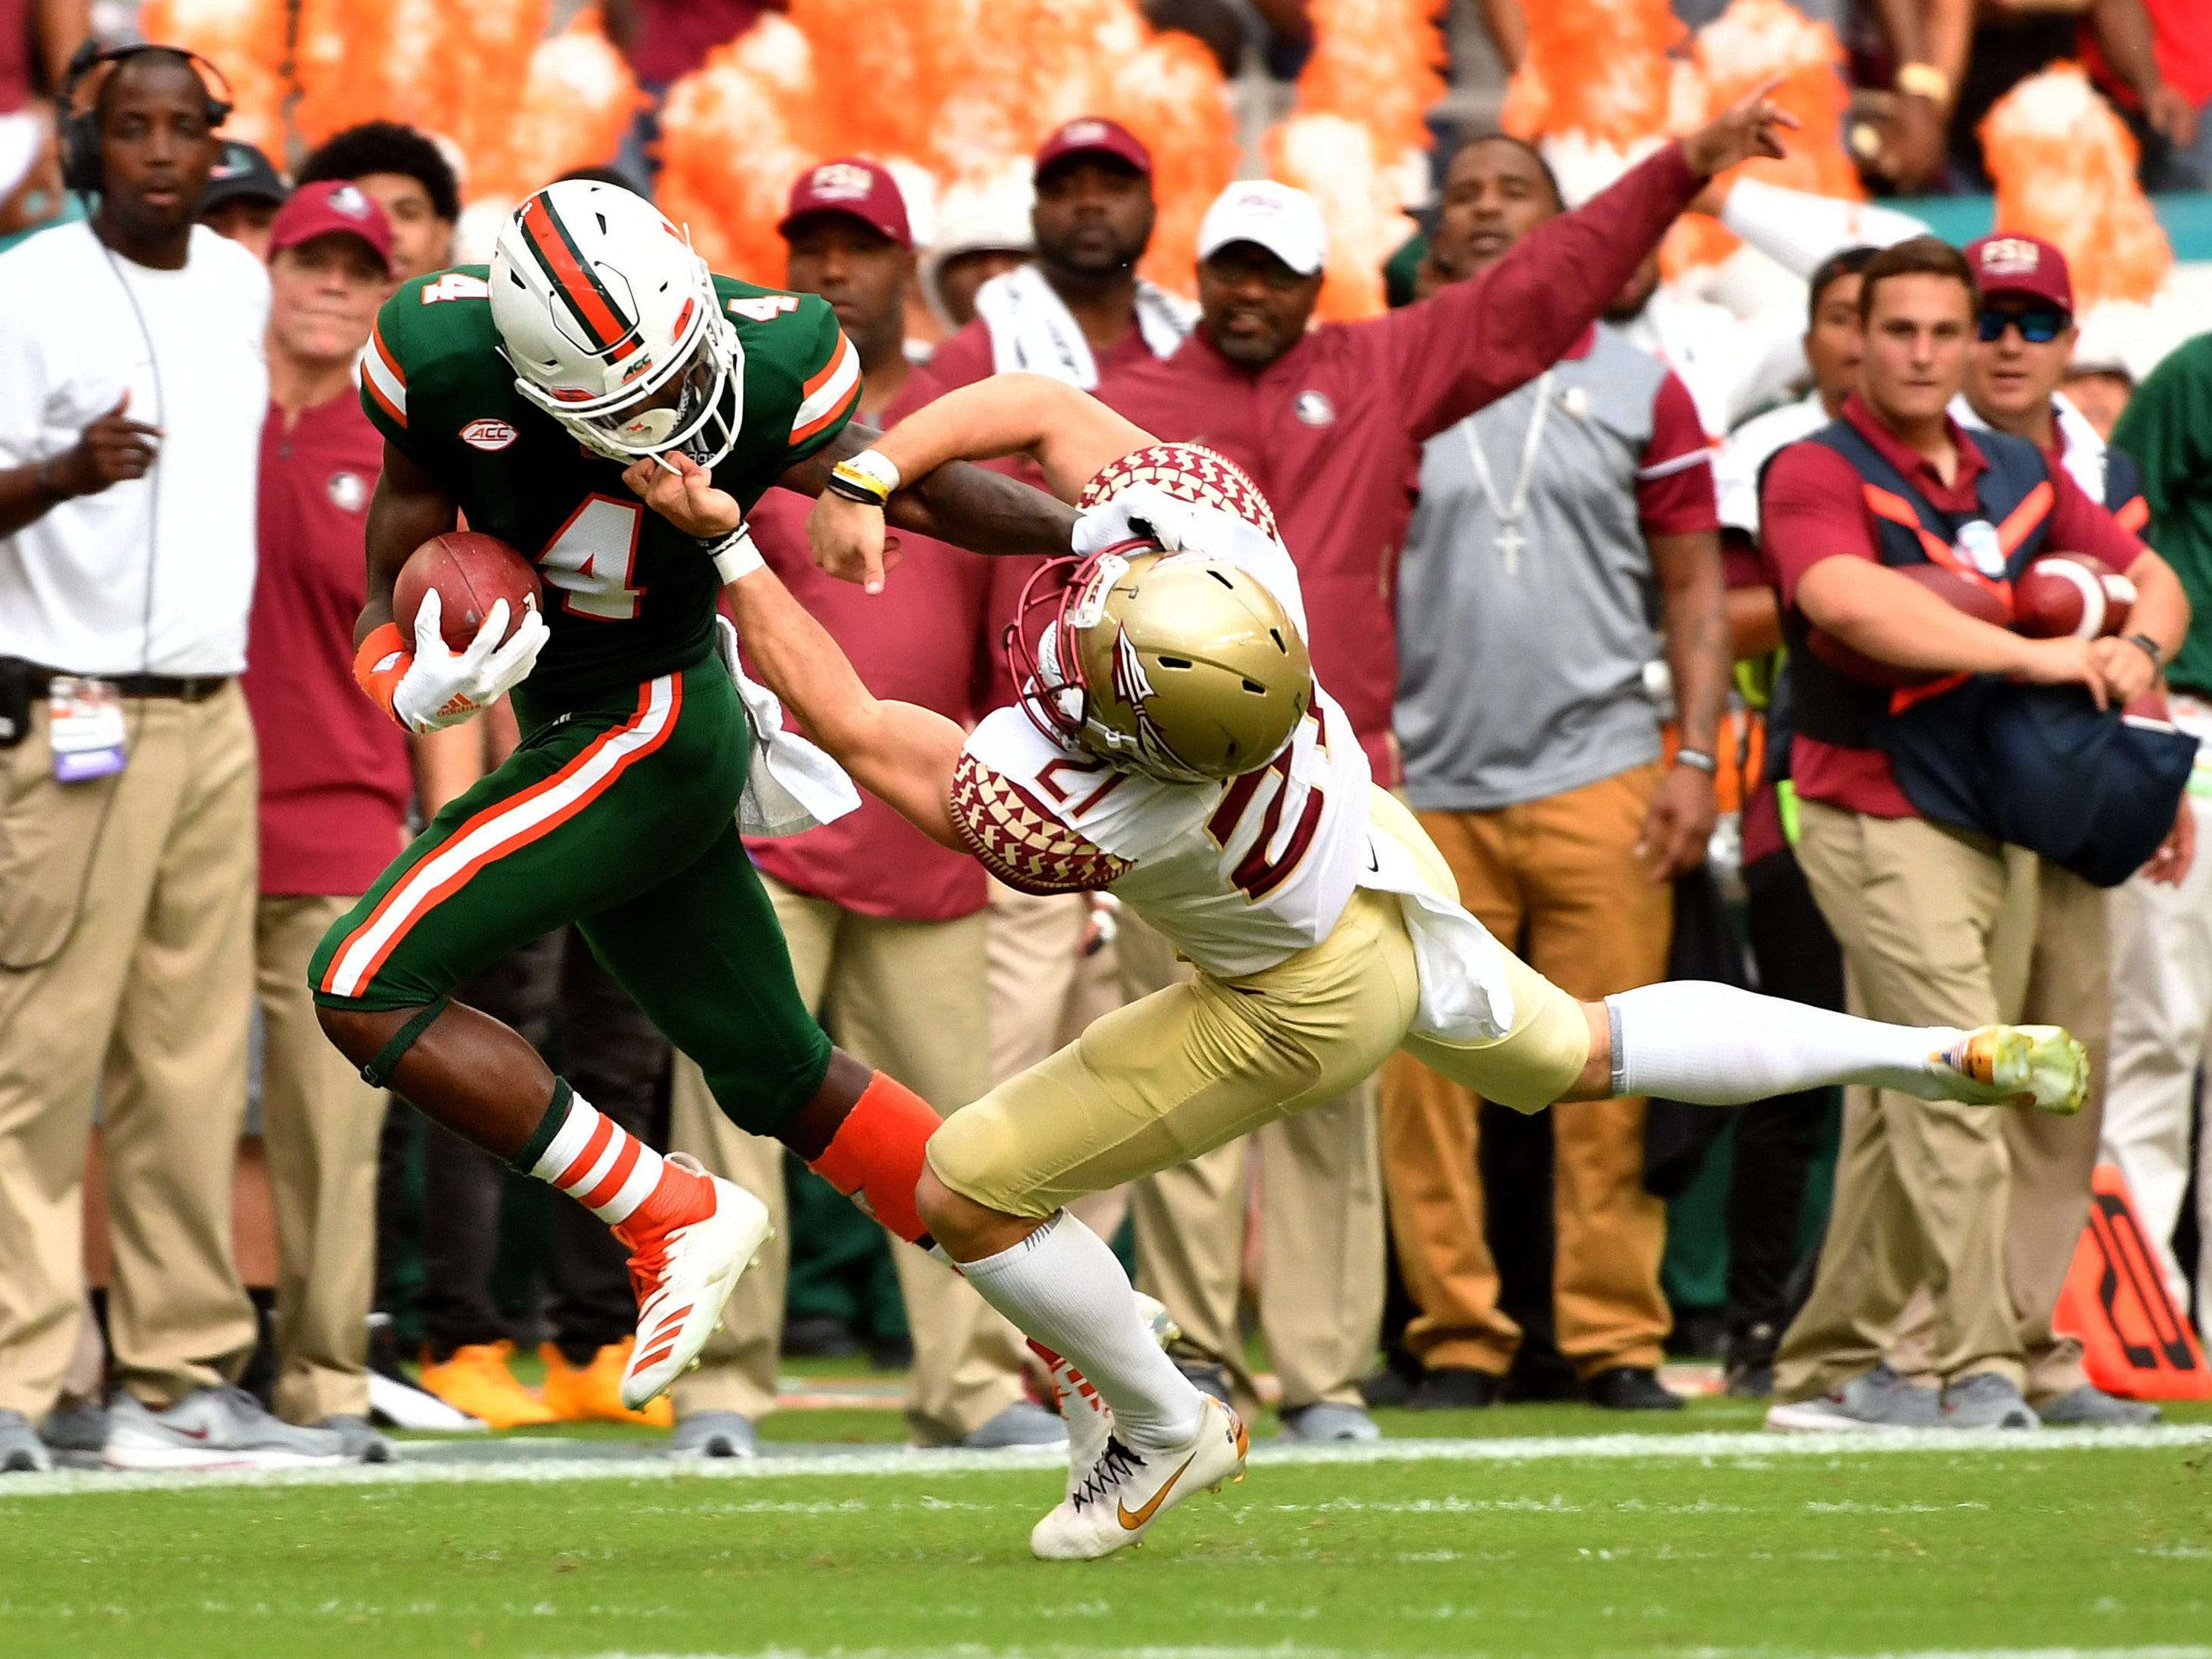 Florida State Seminoles punter Logan Tyler pulls on the facemask of Miami Hurricanes wide receiver Jeff Thomas during the first half at Hard Rock Stadium.